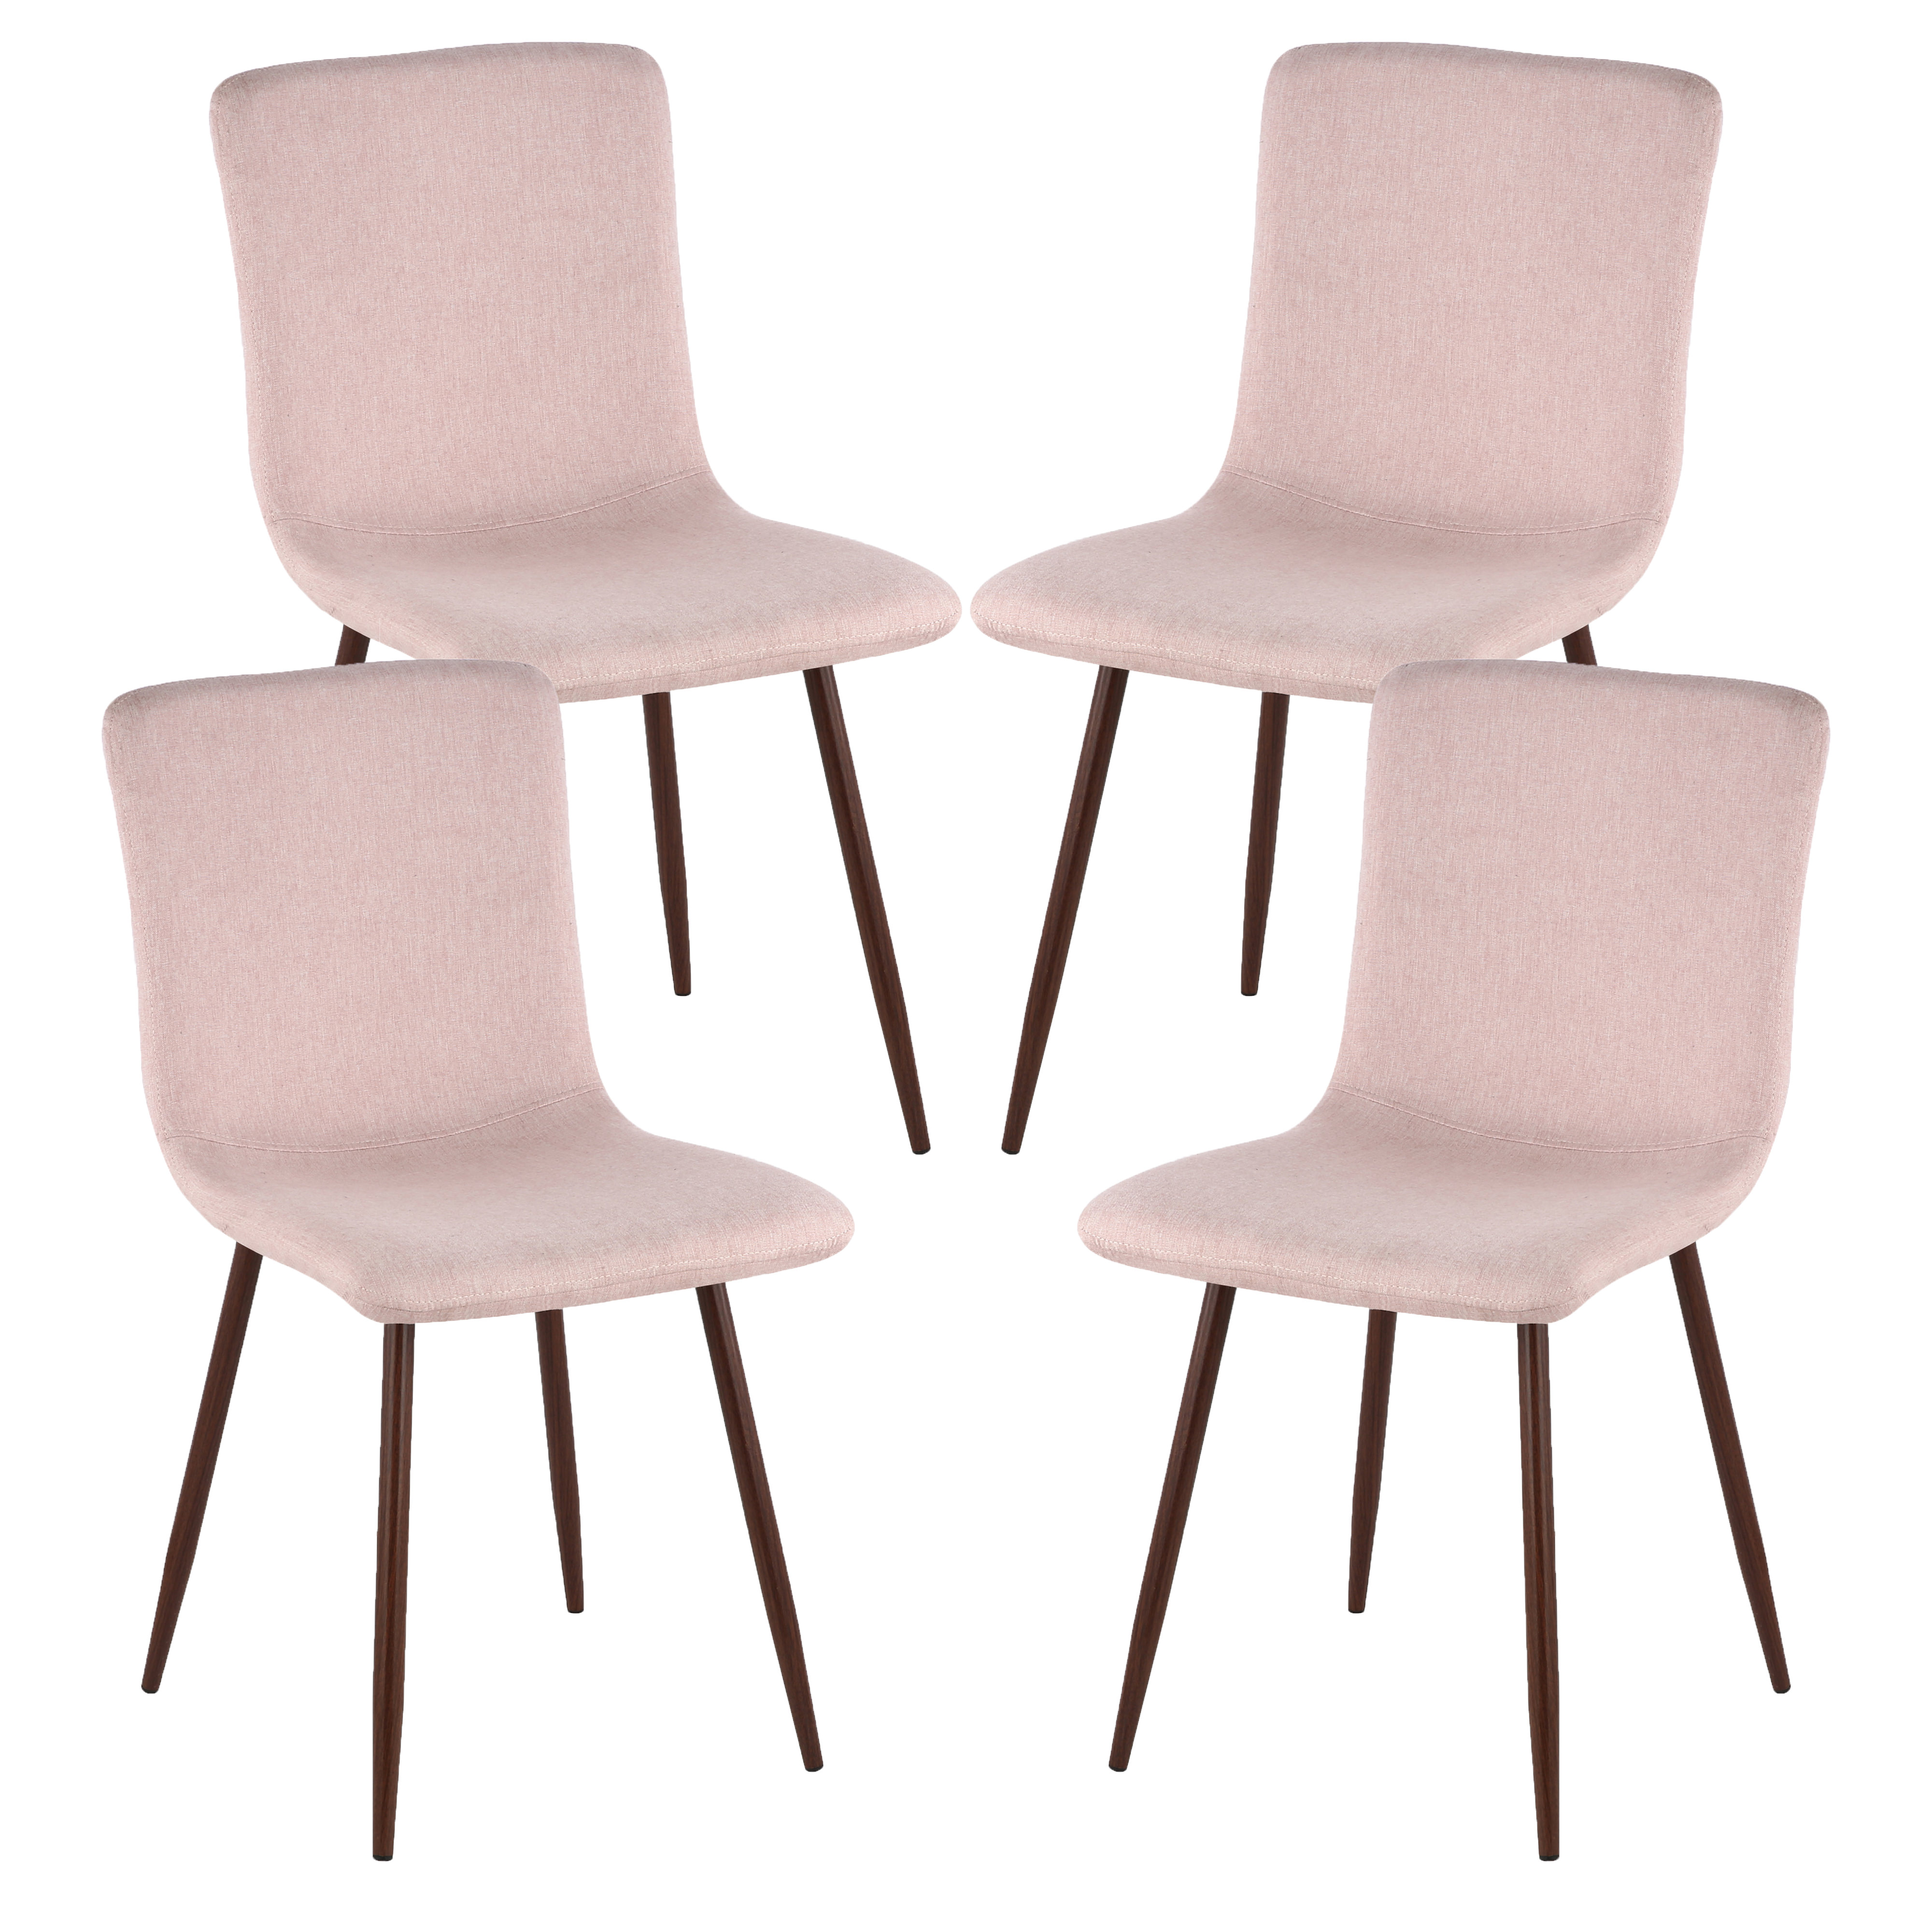 Poly and Bark Wadsworth Dining Chair with Walnut Legs in Green(Set of 4)